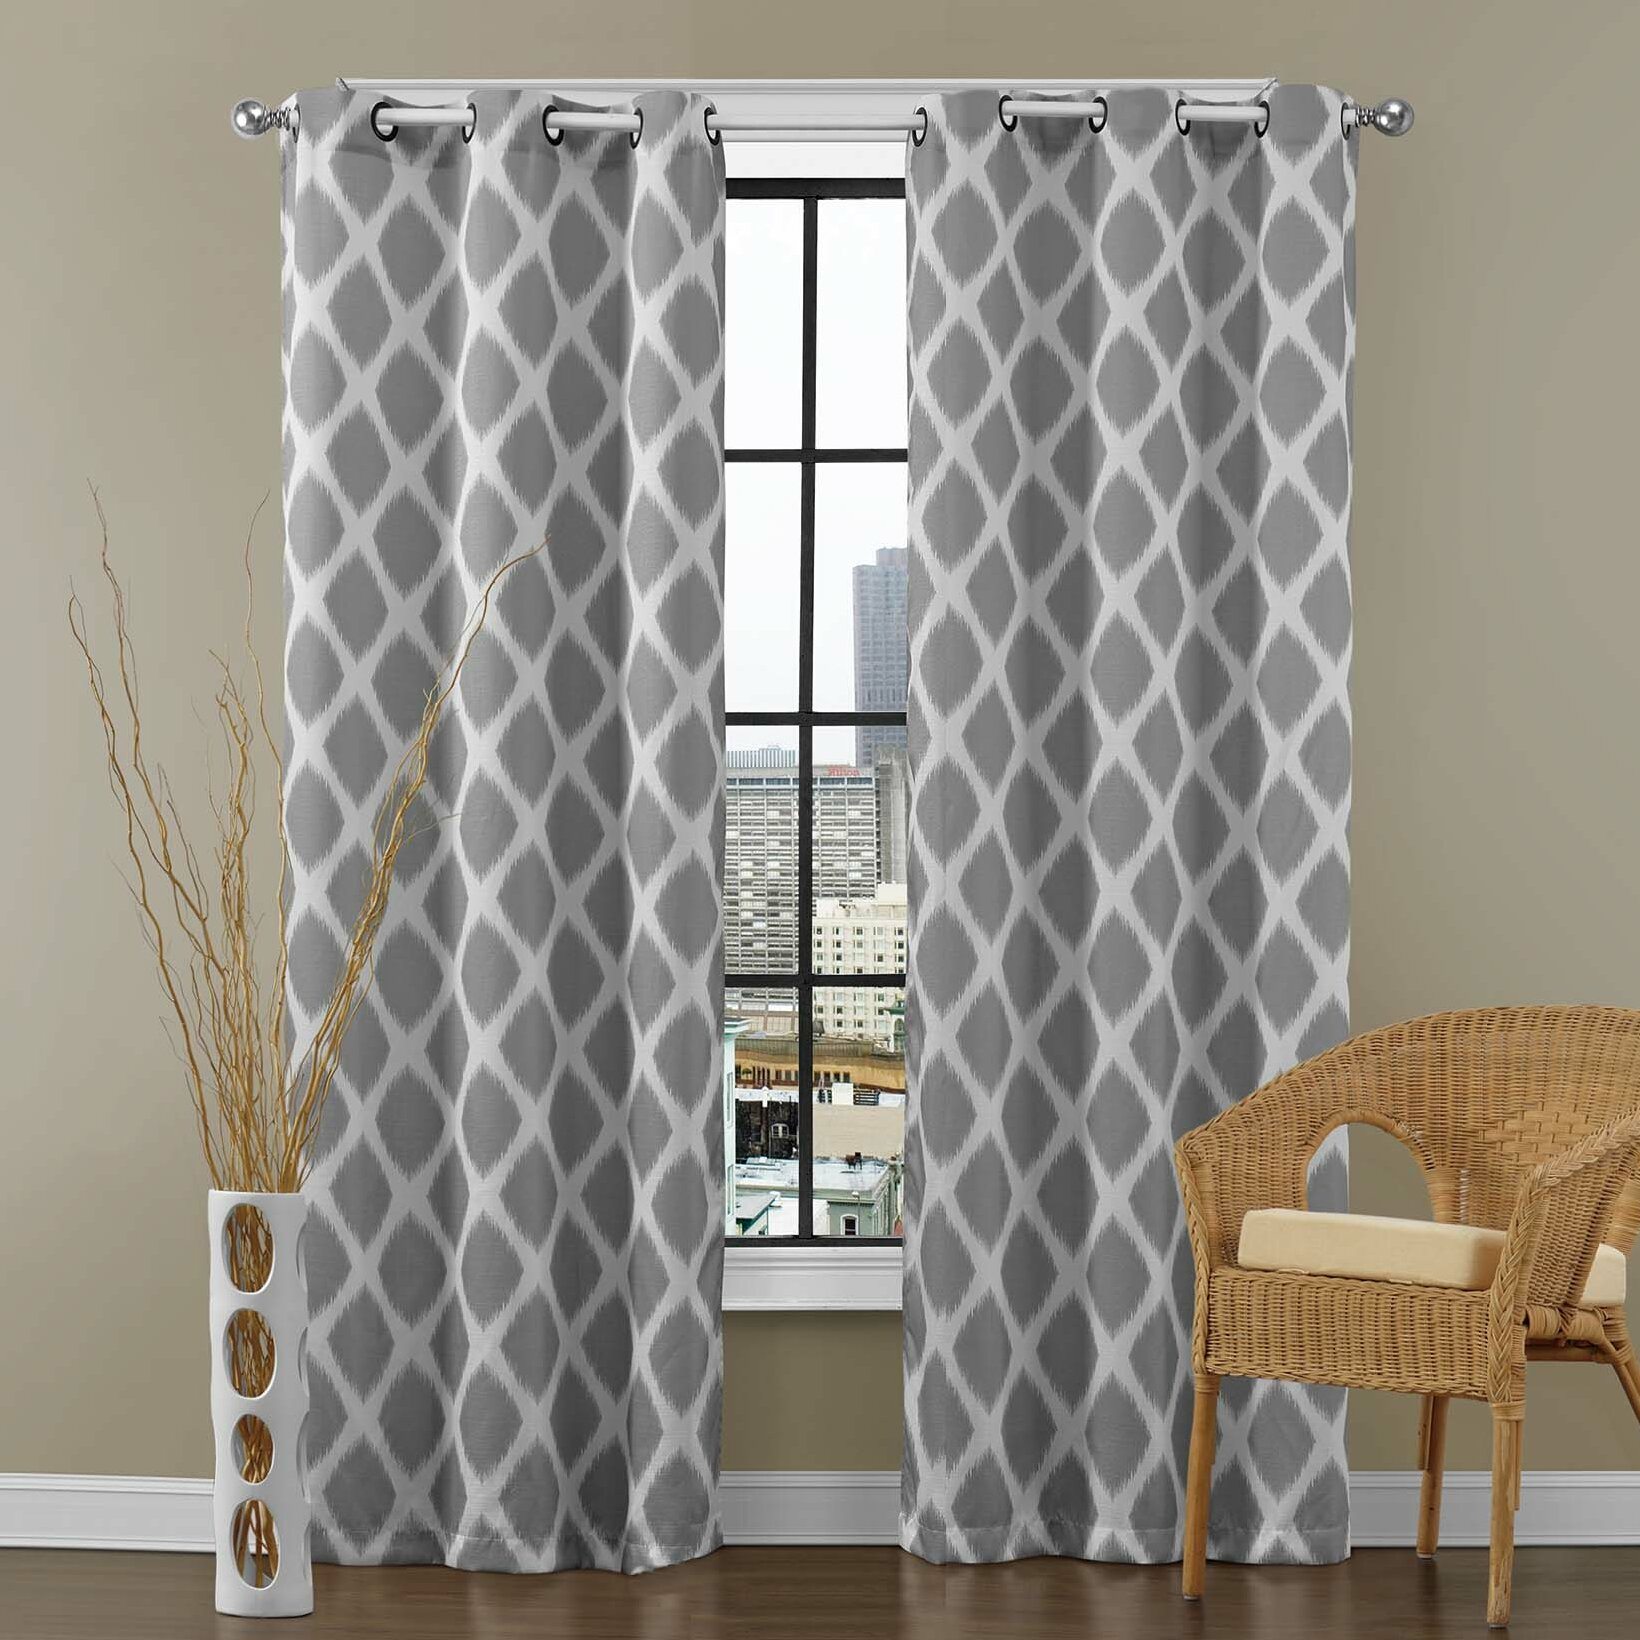 am studio tribeca curtain panel allmodern